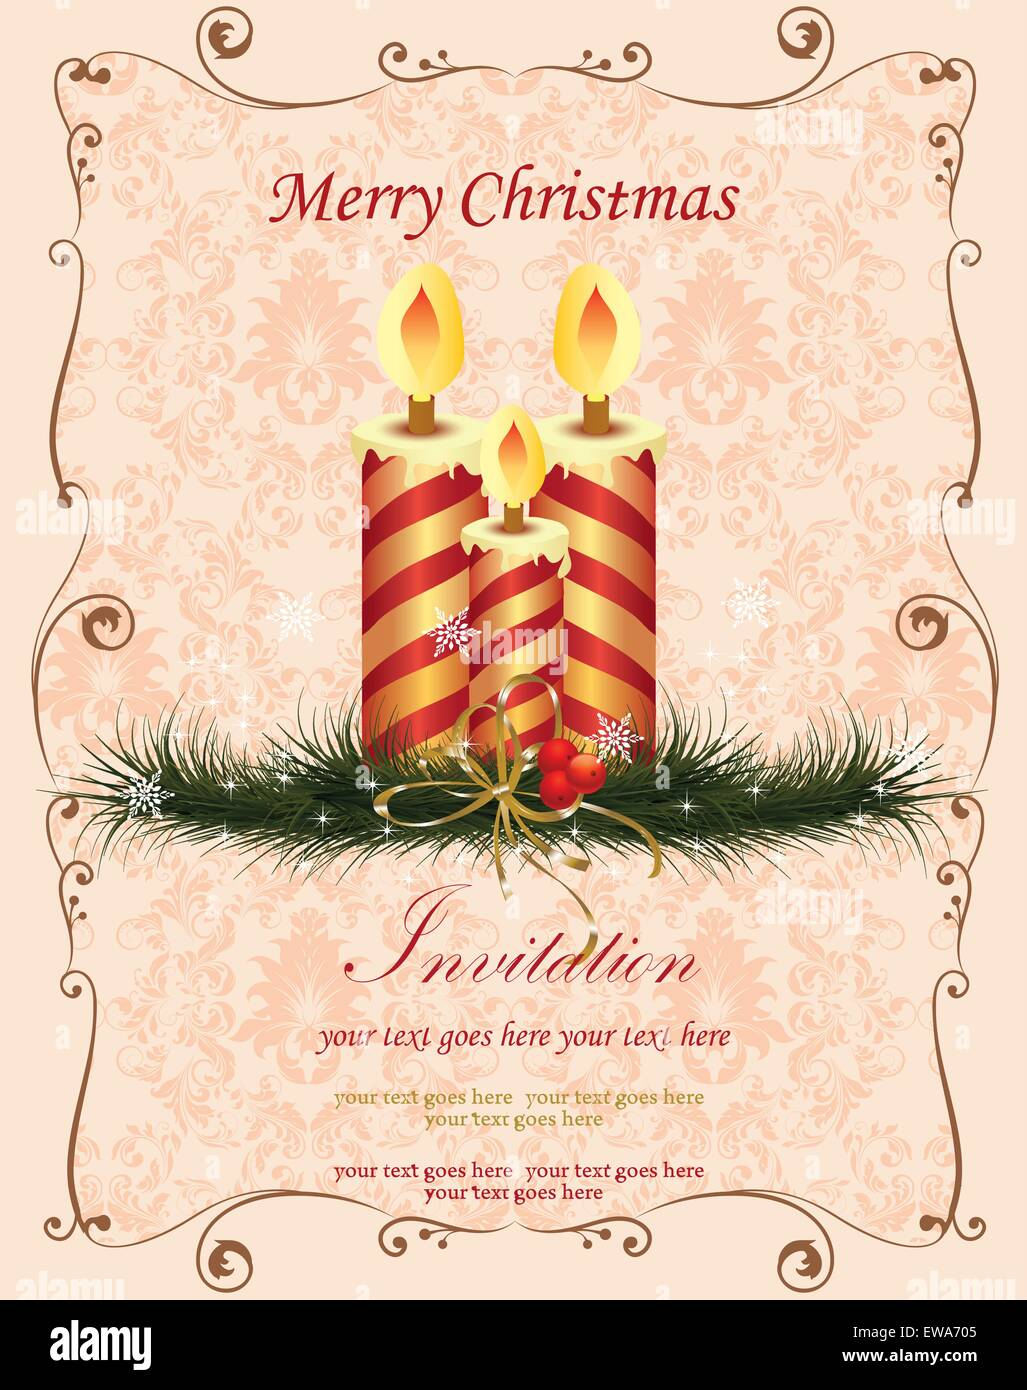 Vintage Christmas Card With Ornate Elegant Retro Abstract Floral